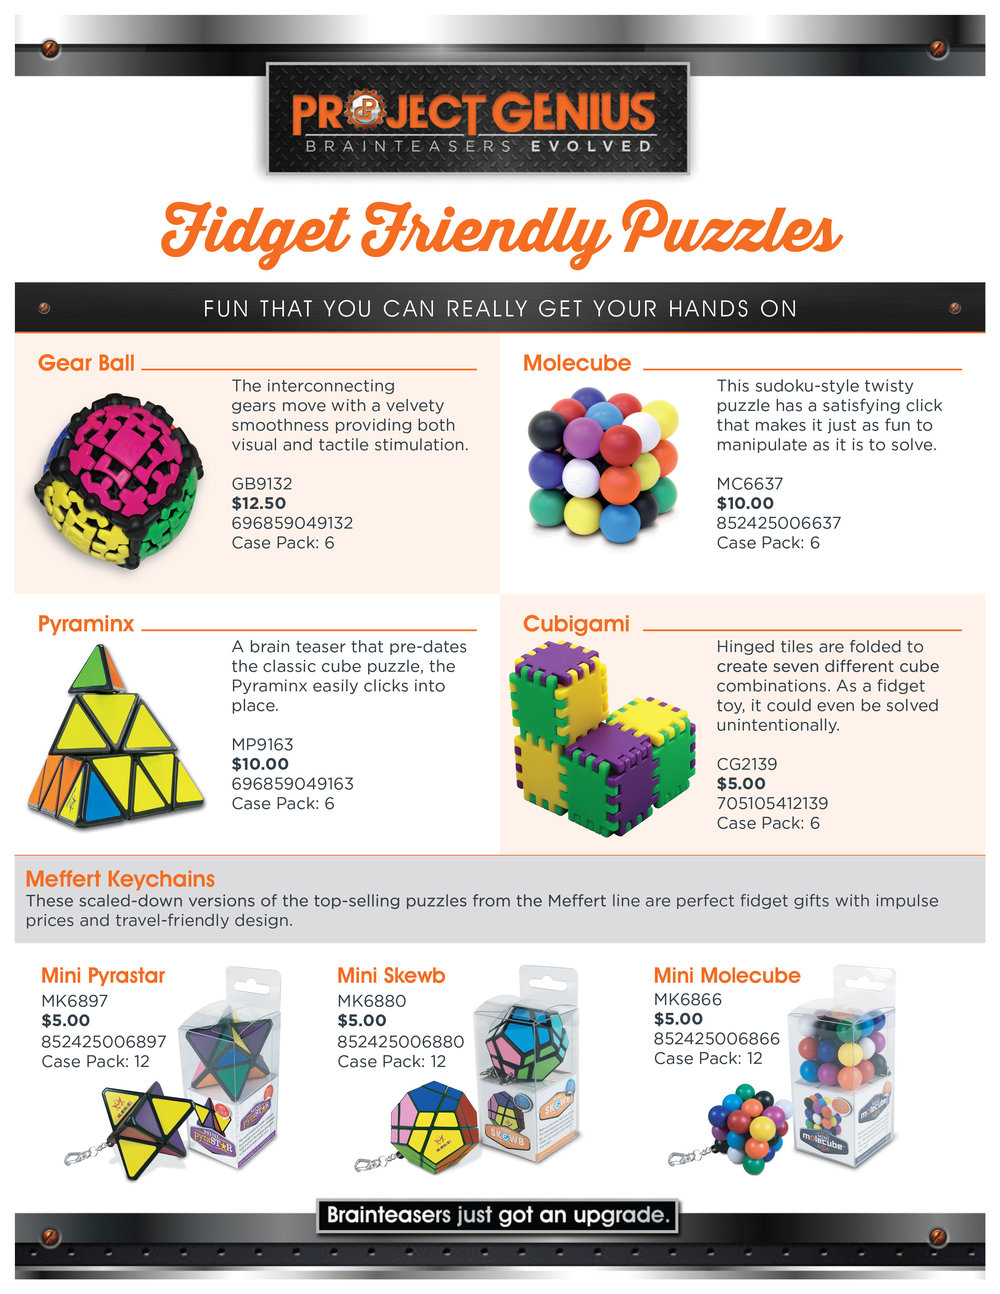 Fidget-Friendly_Puzzles-01.jpg